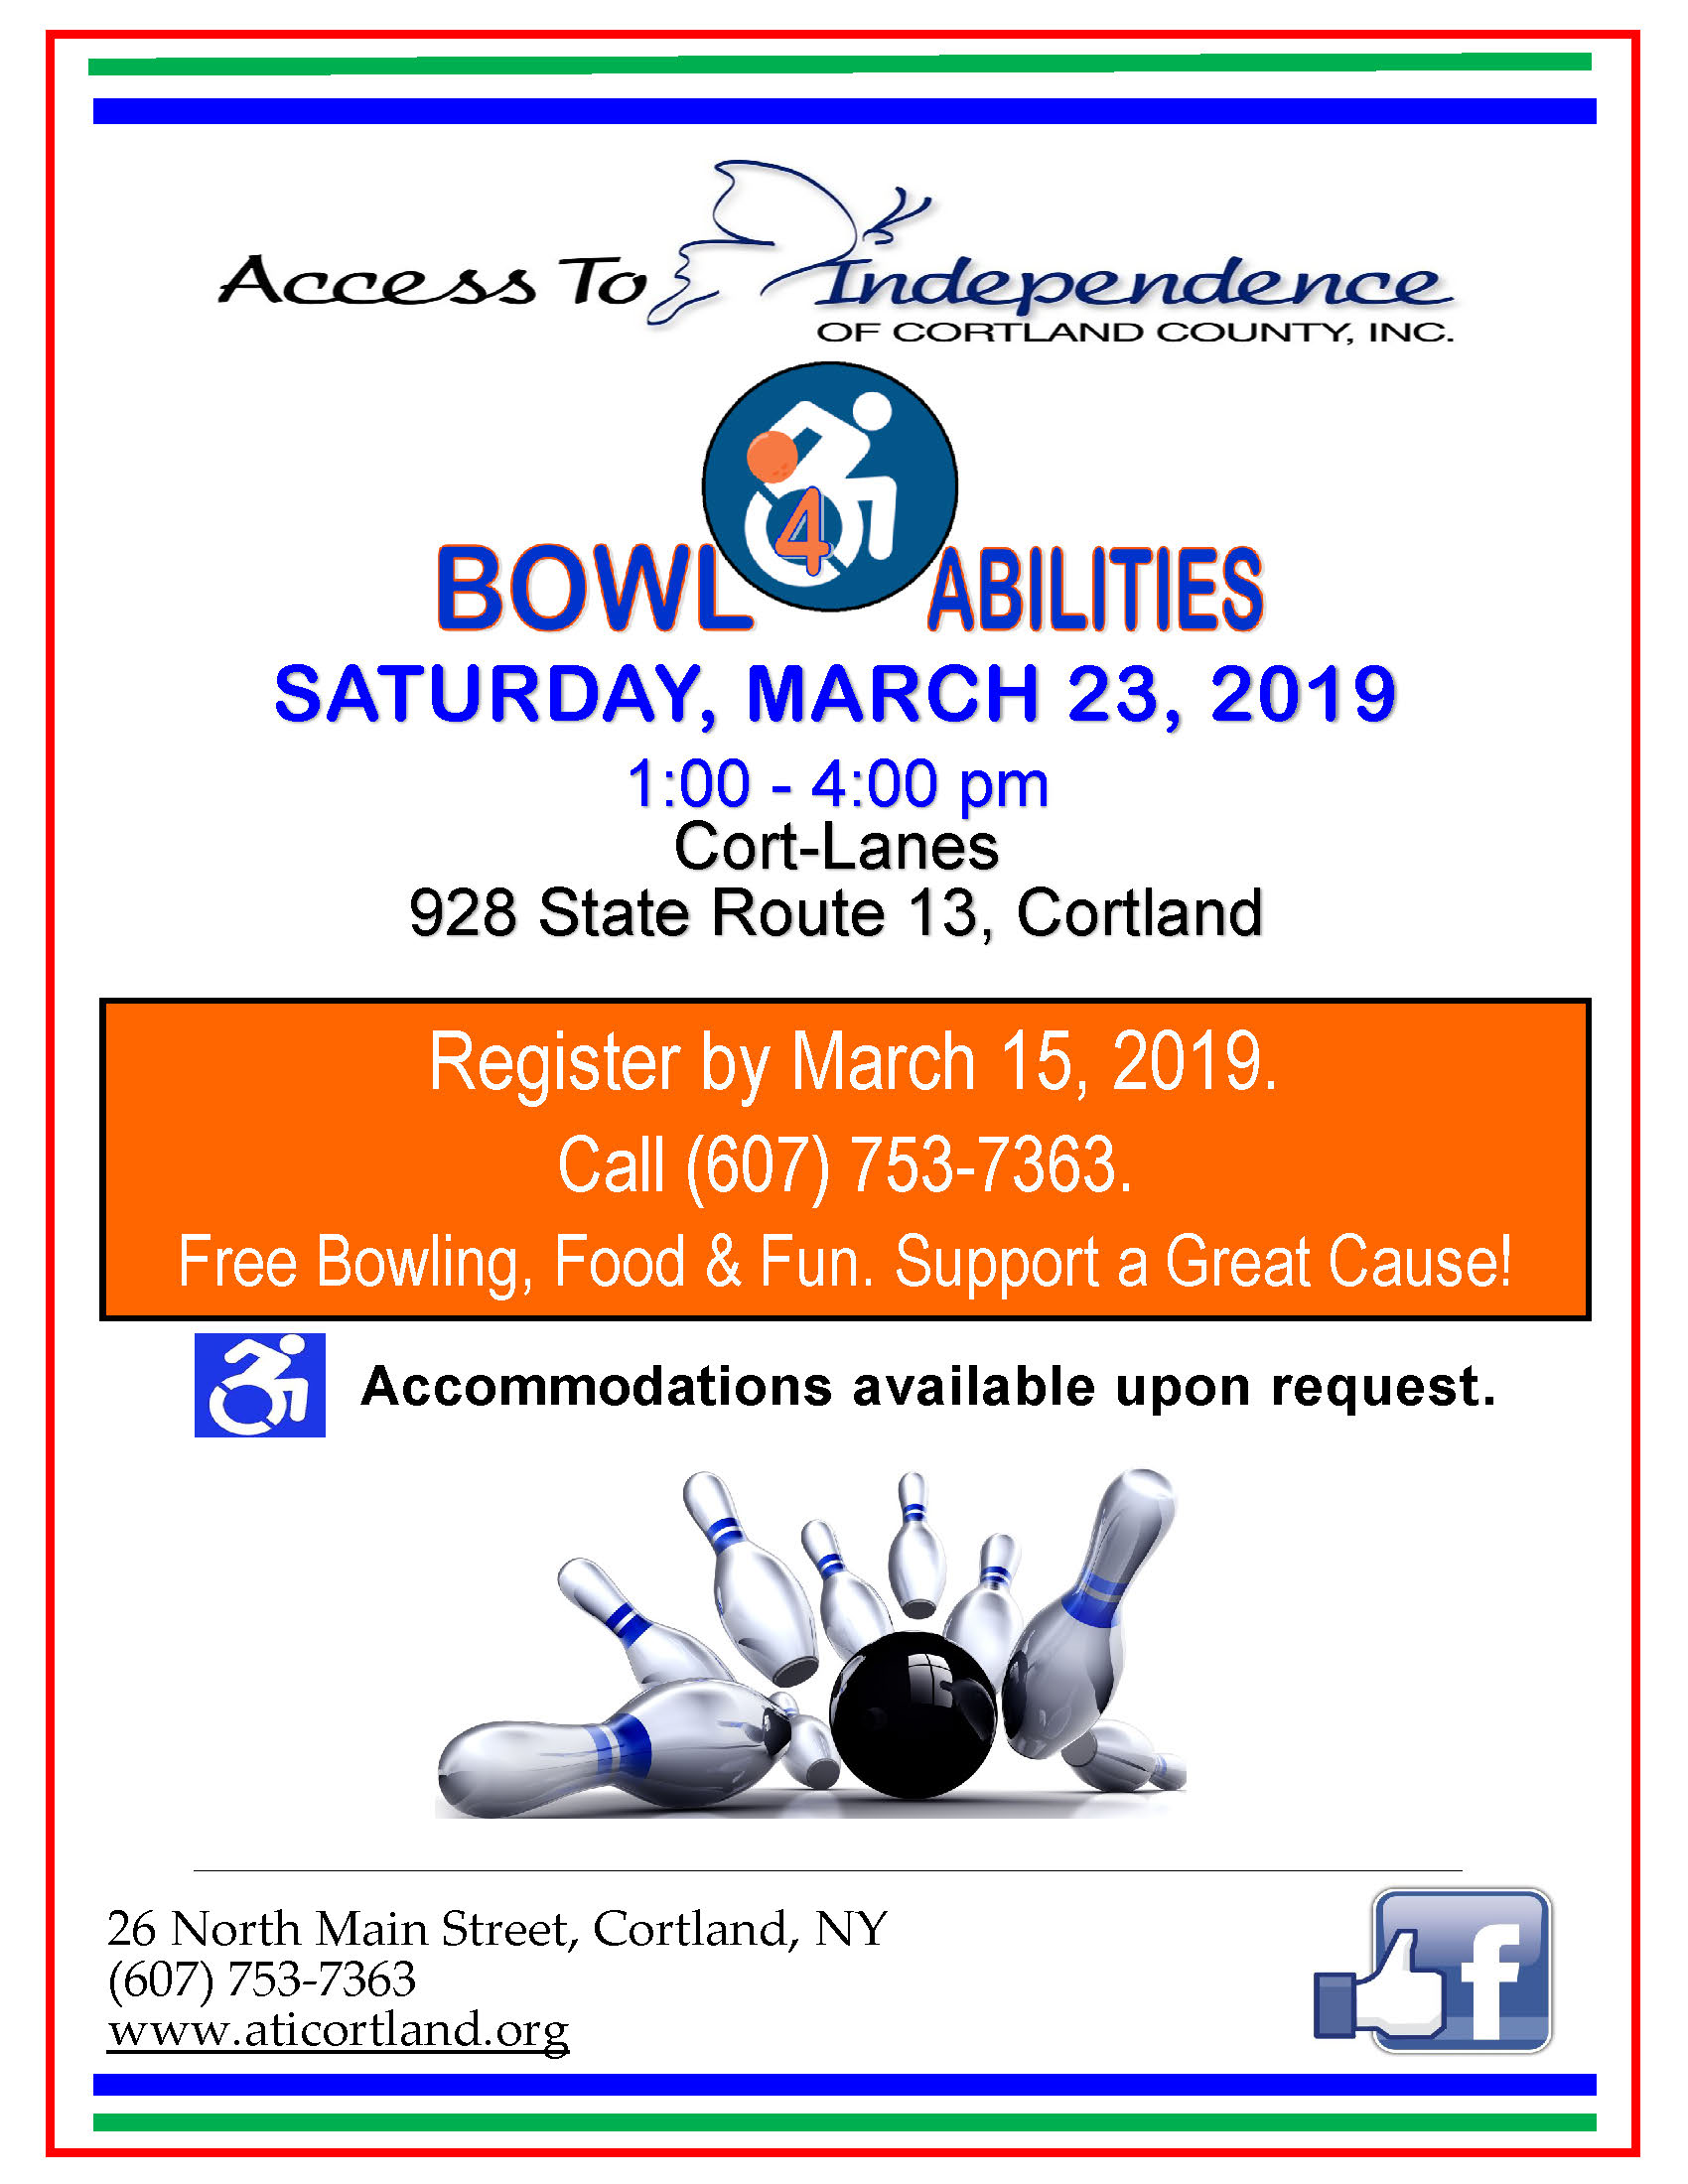 2019 Bowl 4 Abilities Flyer